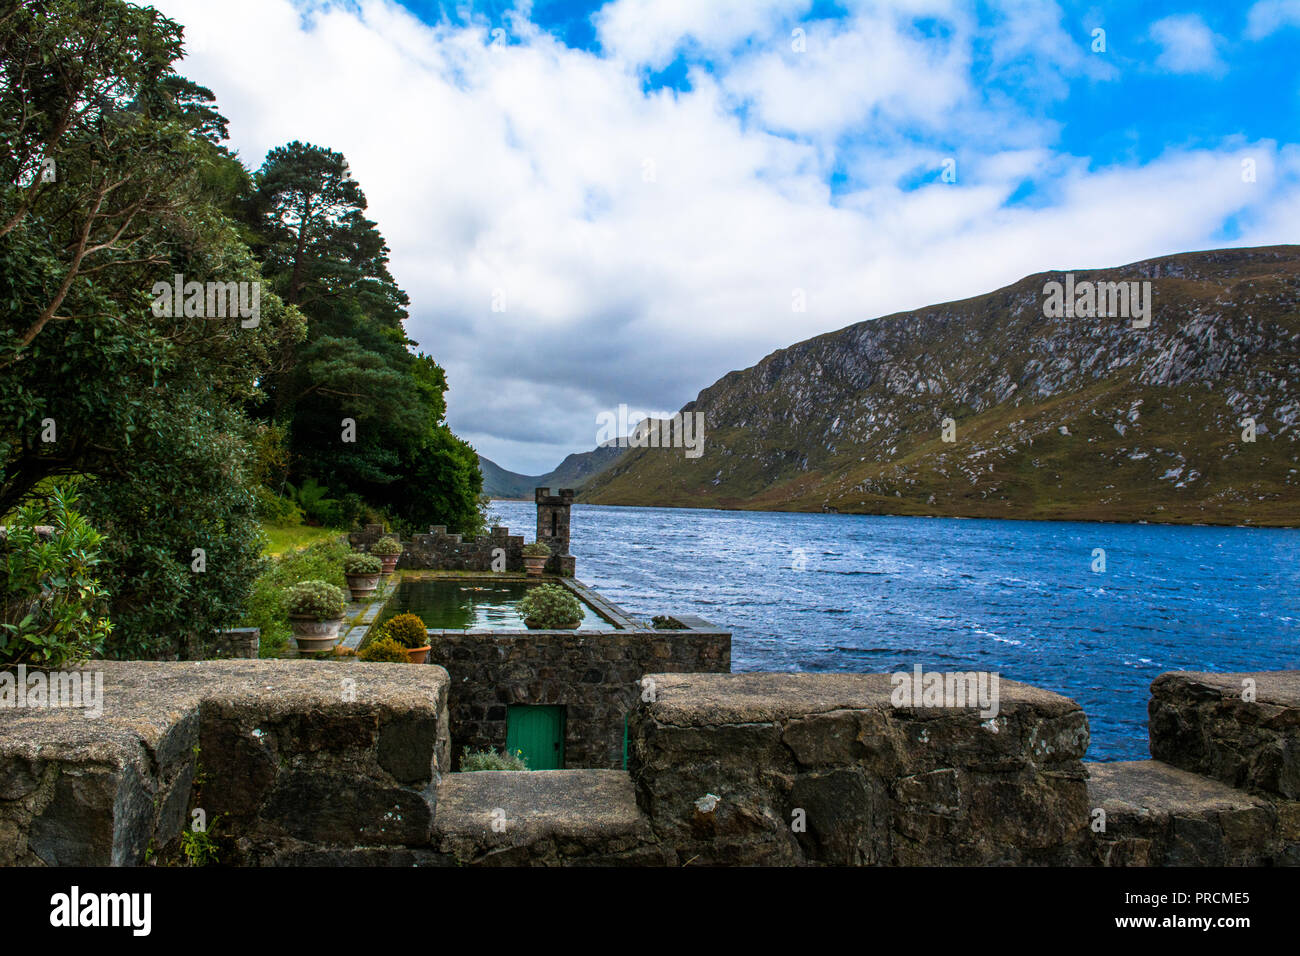 Glenveagh National Park Gweedore Donegal Ireland - Stock Image